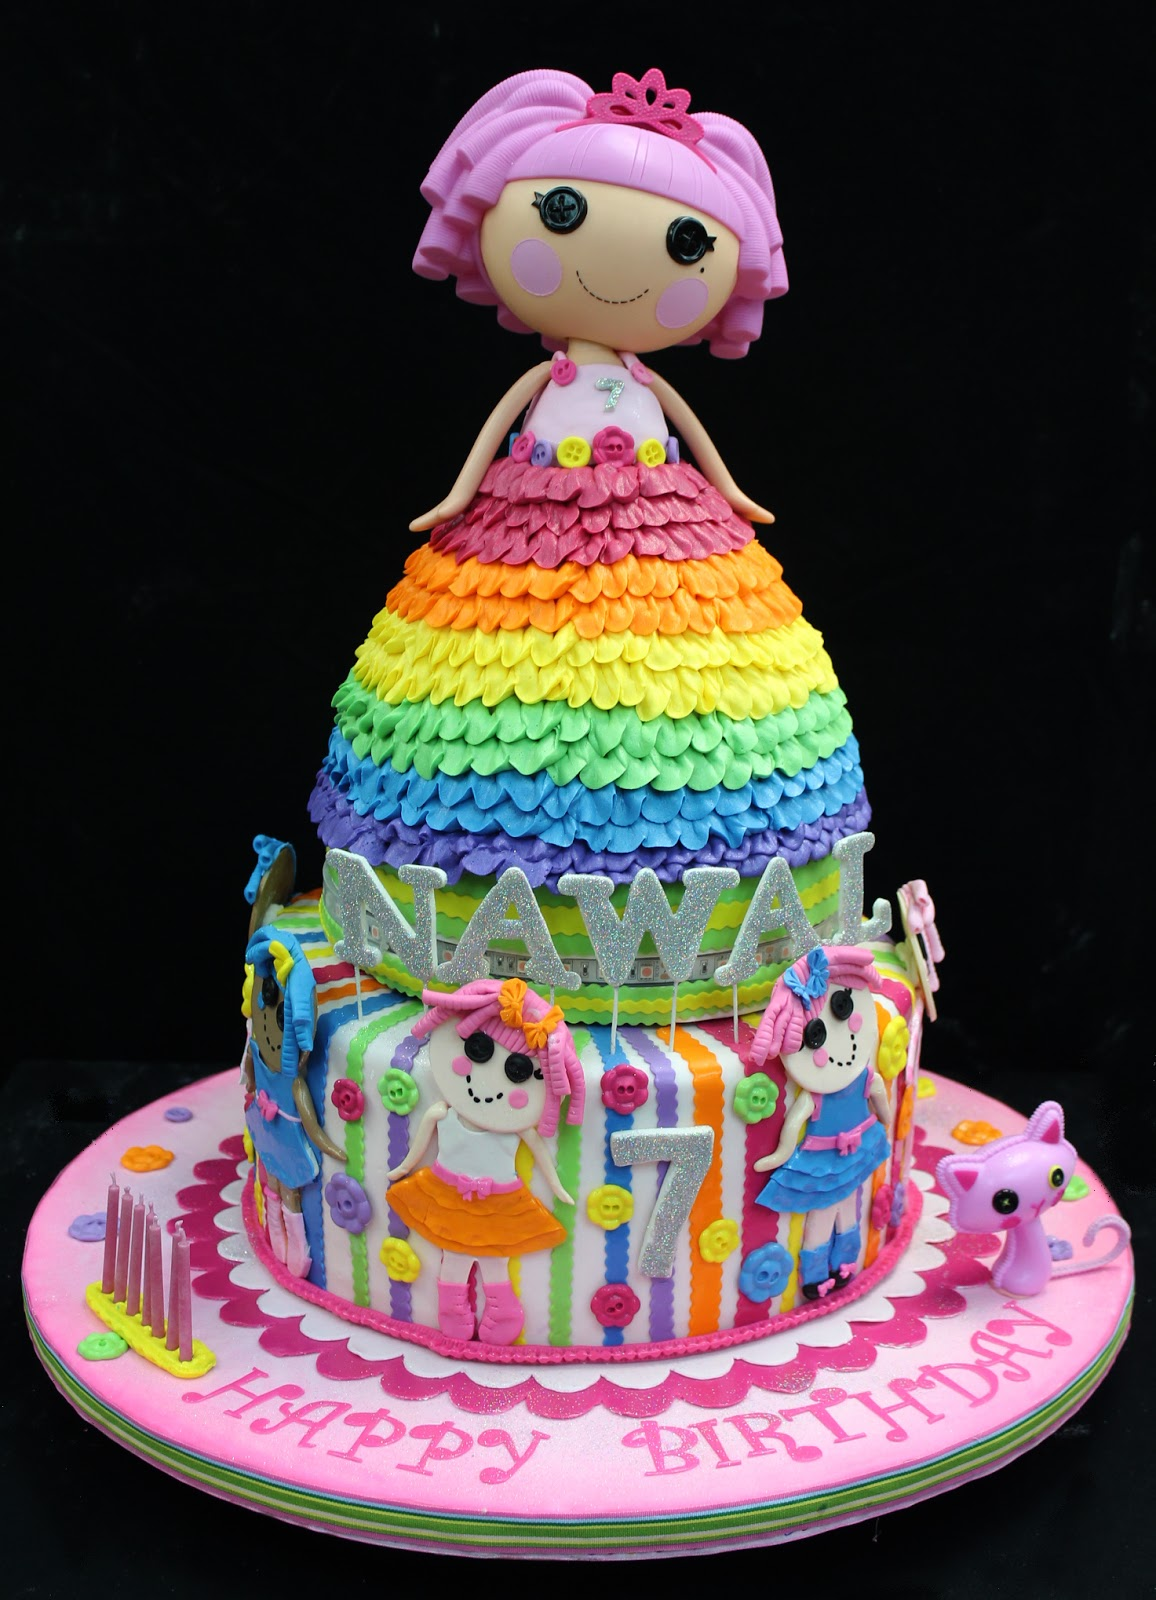 40 Lol Doll Cake Ideas Lol Doll Cake Doll Cake Lol Dolls